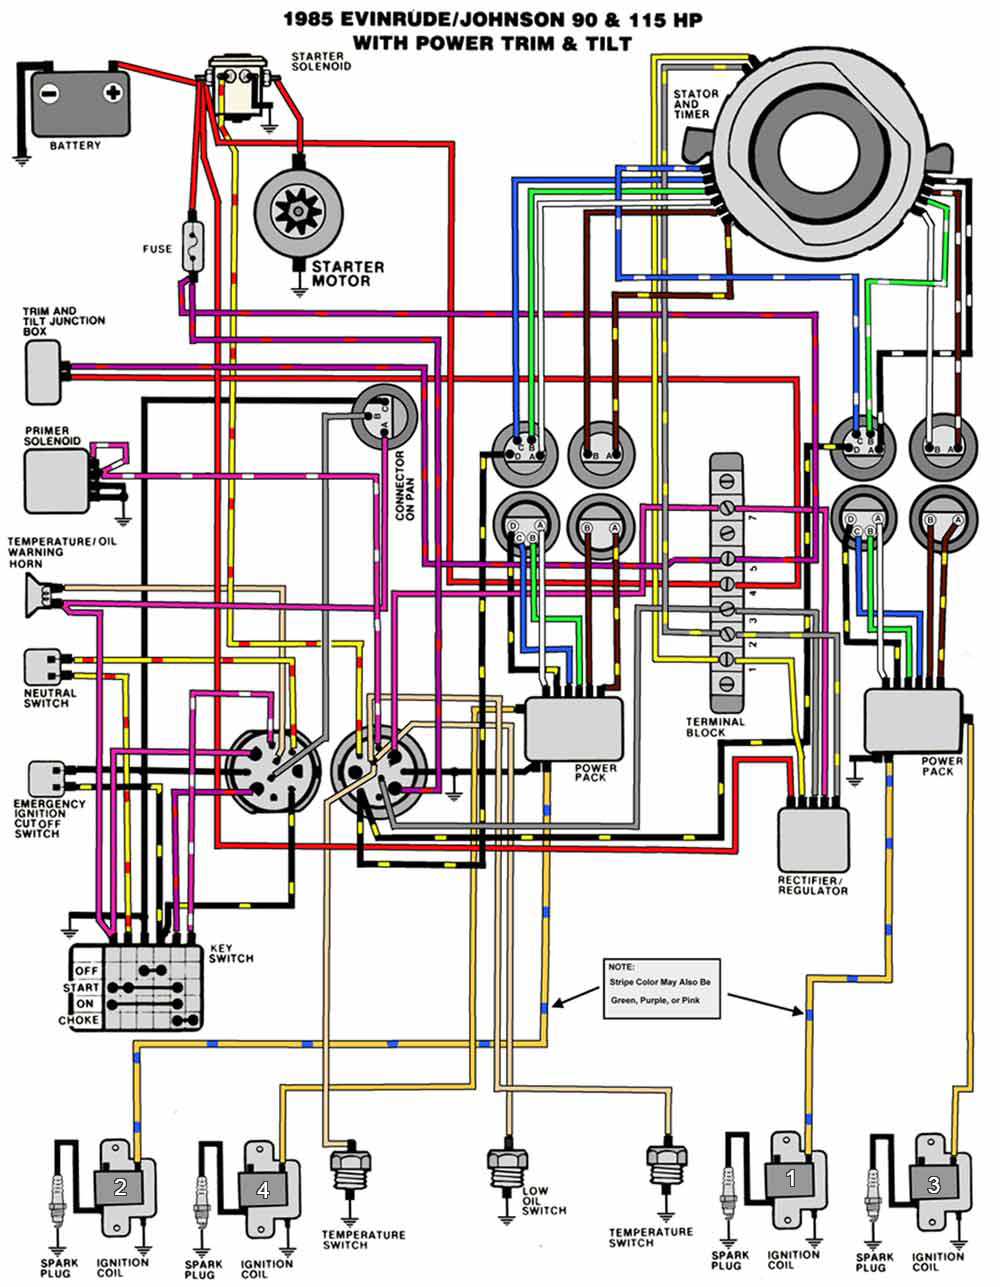 35 hp johnson 3 cyl wiring diagram 70 hp johnson ignition switch wiring diagram evinrude johnson outboard wiring diagrams -- mastertech ...